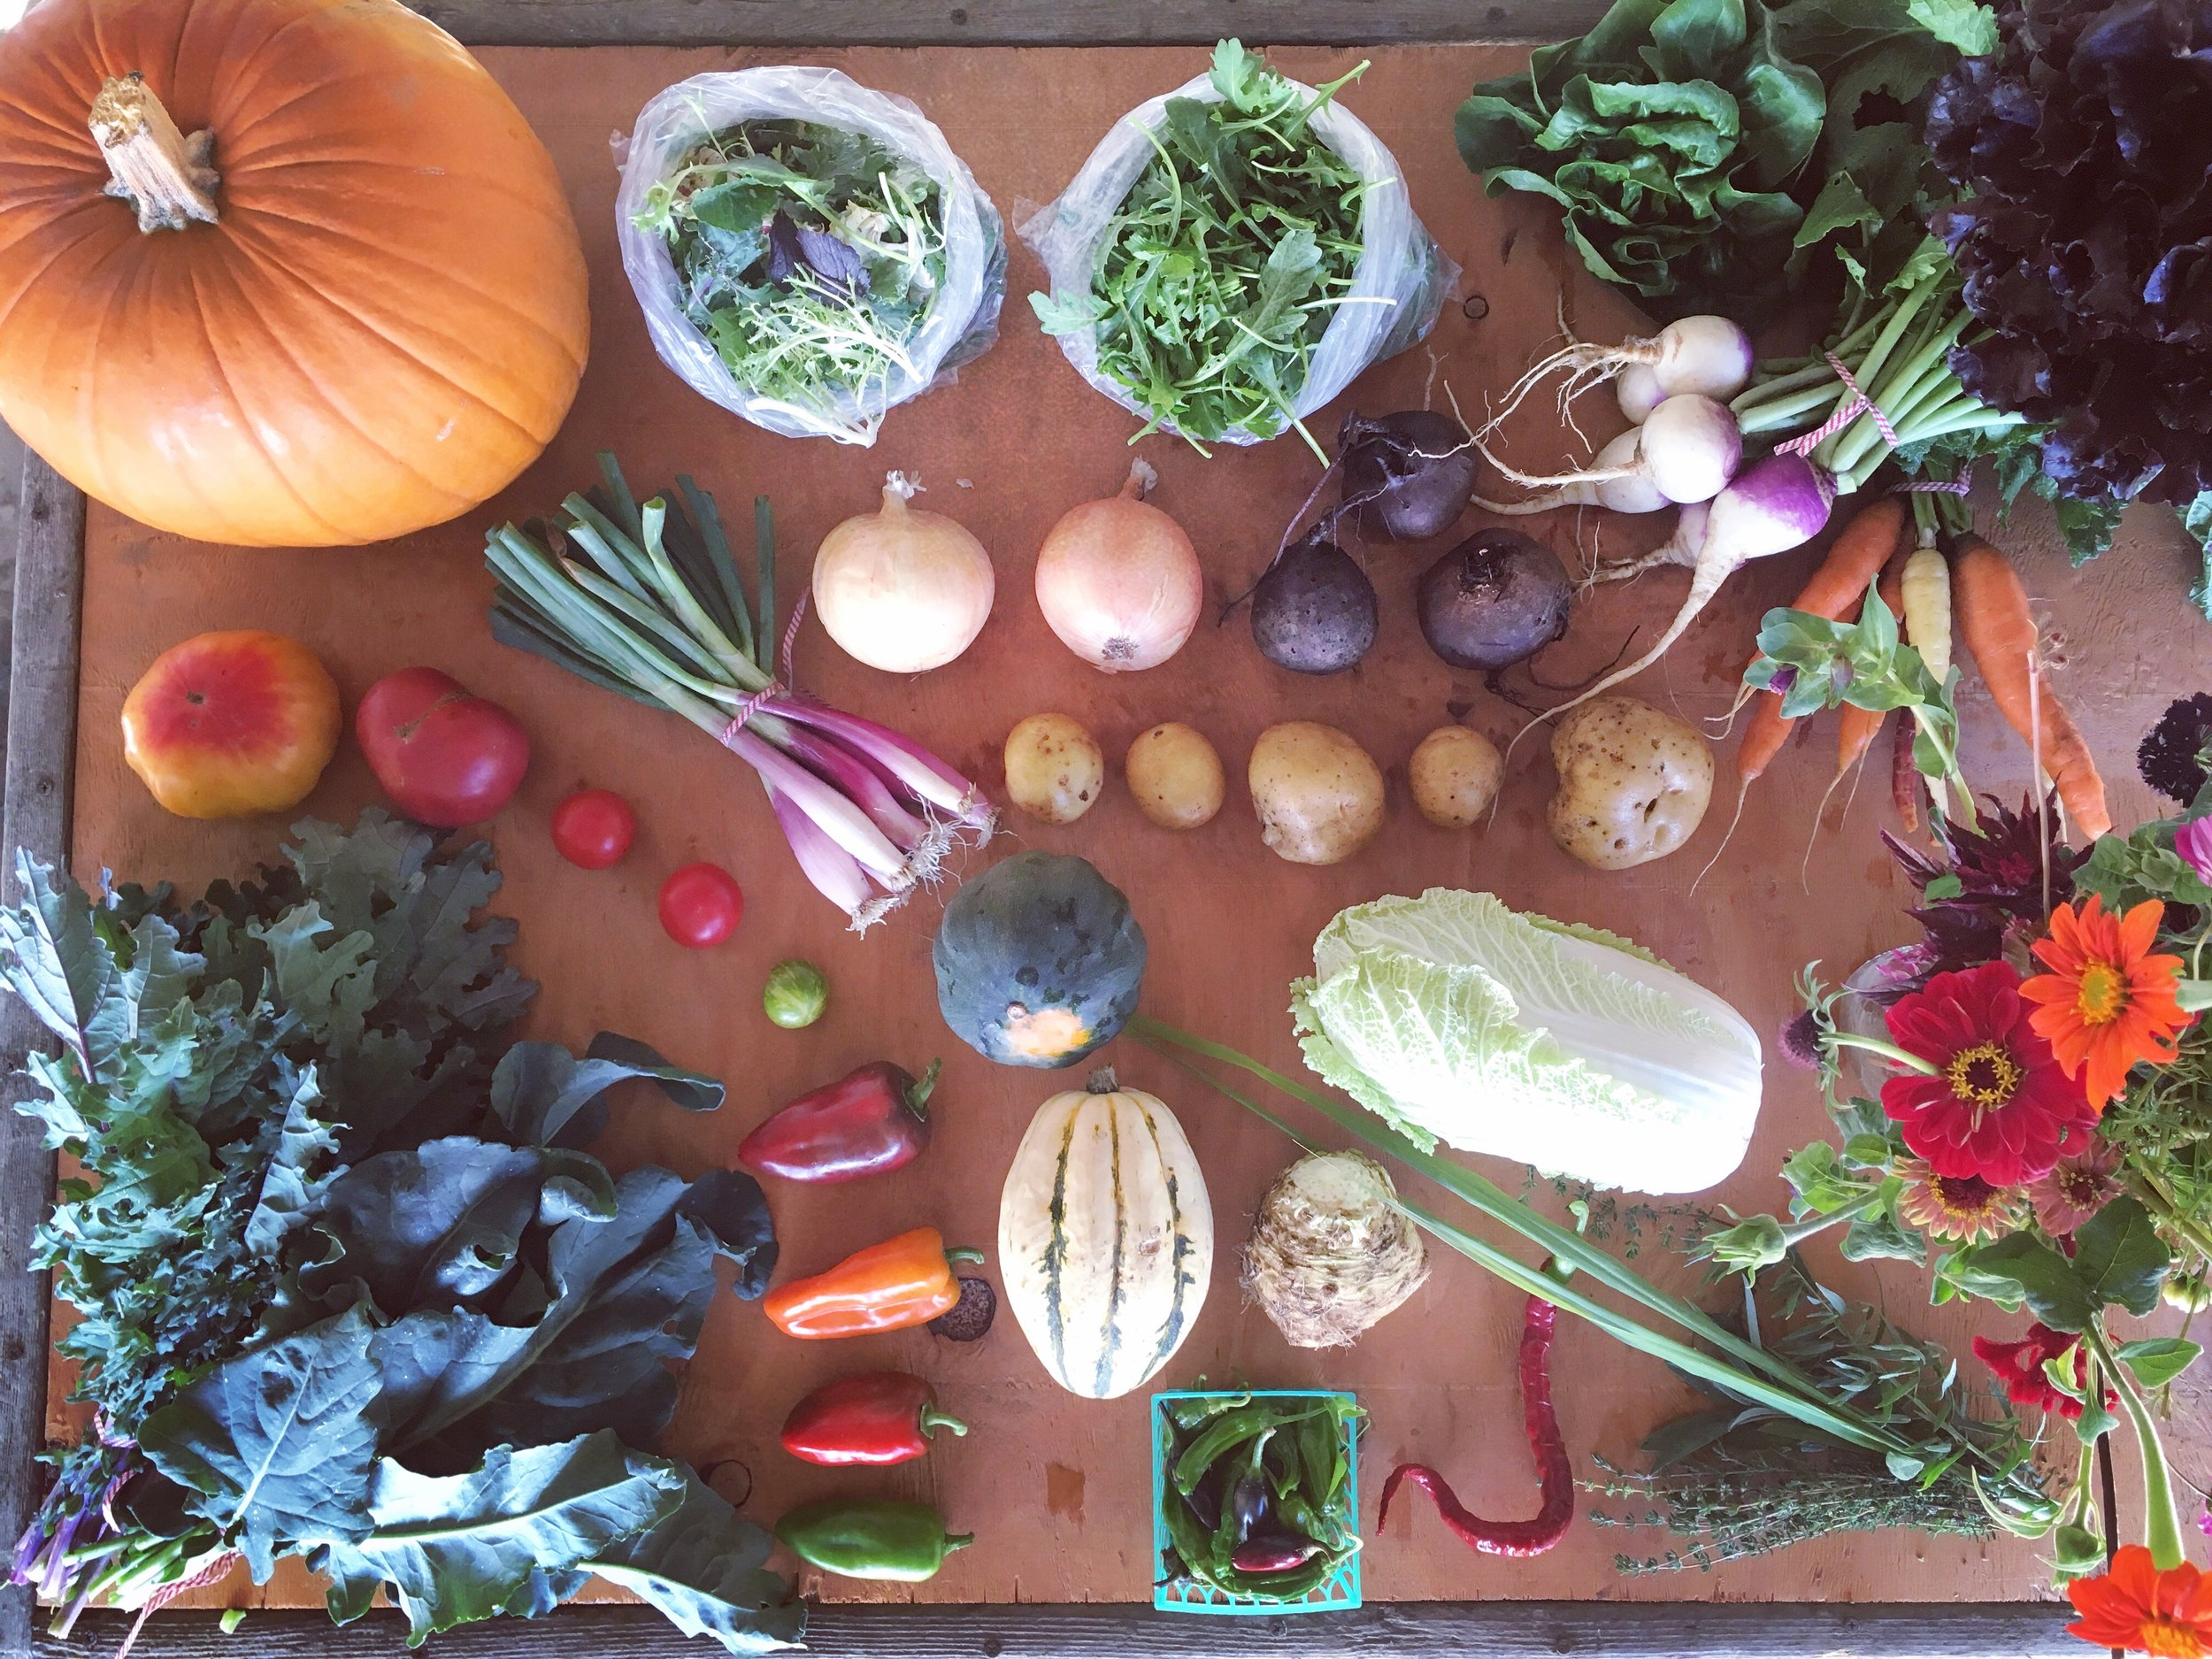 COST COMPARISON : At Farmer's Market rates, this sample share from late October 2017 contains $80.50 of produce ($53.50 worth of pre-harvested produce and $27 worth of u-pick crops, flowers, and herbs). If a two-adult, one bag share is $46.15 per week, that's $34.35 of savings!